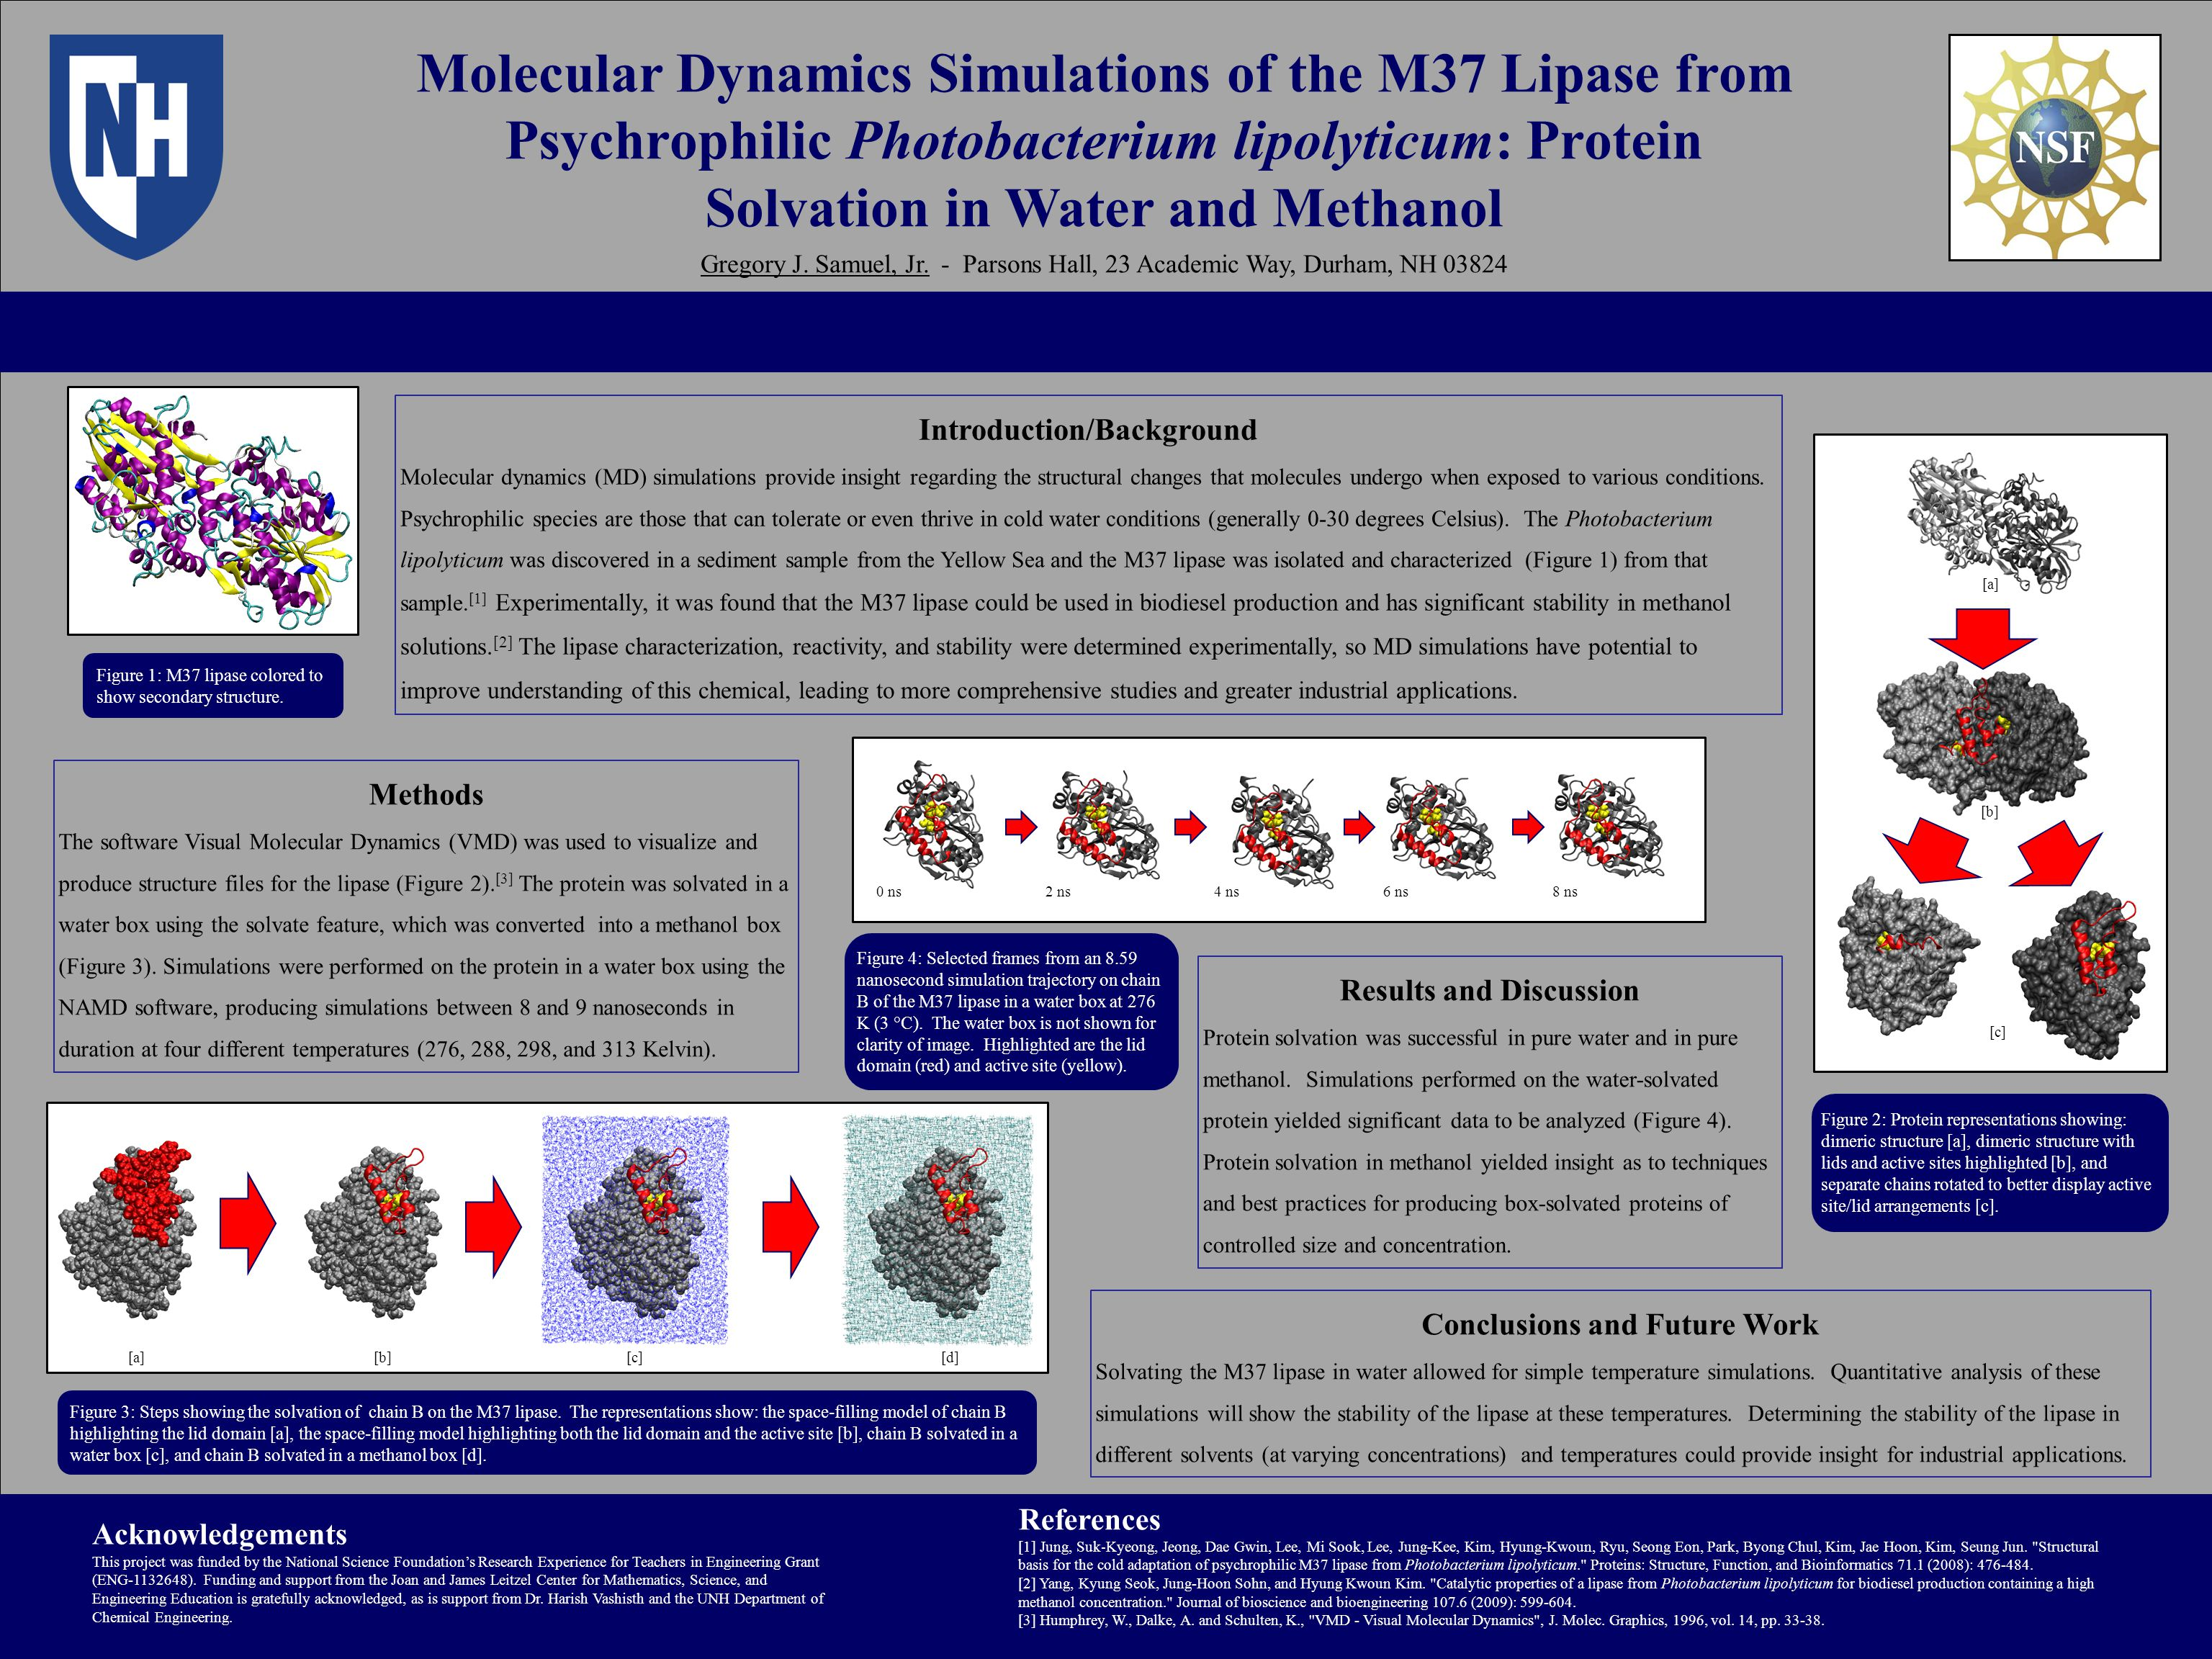 Molecular Dynamics Simulations of the M37 Lipase from Psychrophilic Photobacterium lipolyticum: Protein Solvation in Water and Methanol Gregory J.